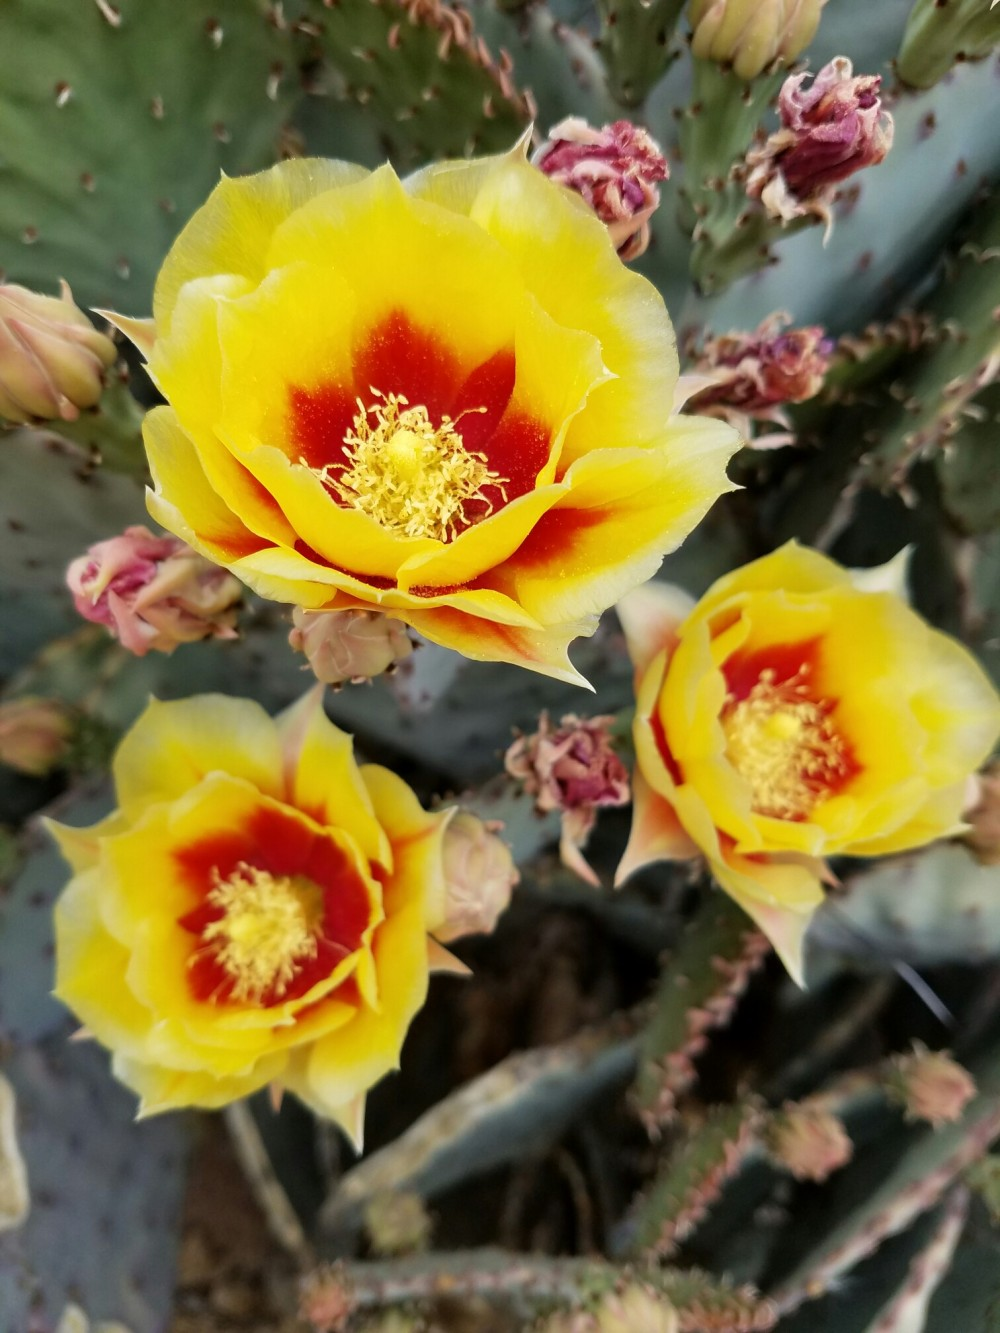 A purple prickly pear cactus shows off its spring fashion with bright yellow and red blooms